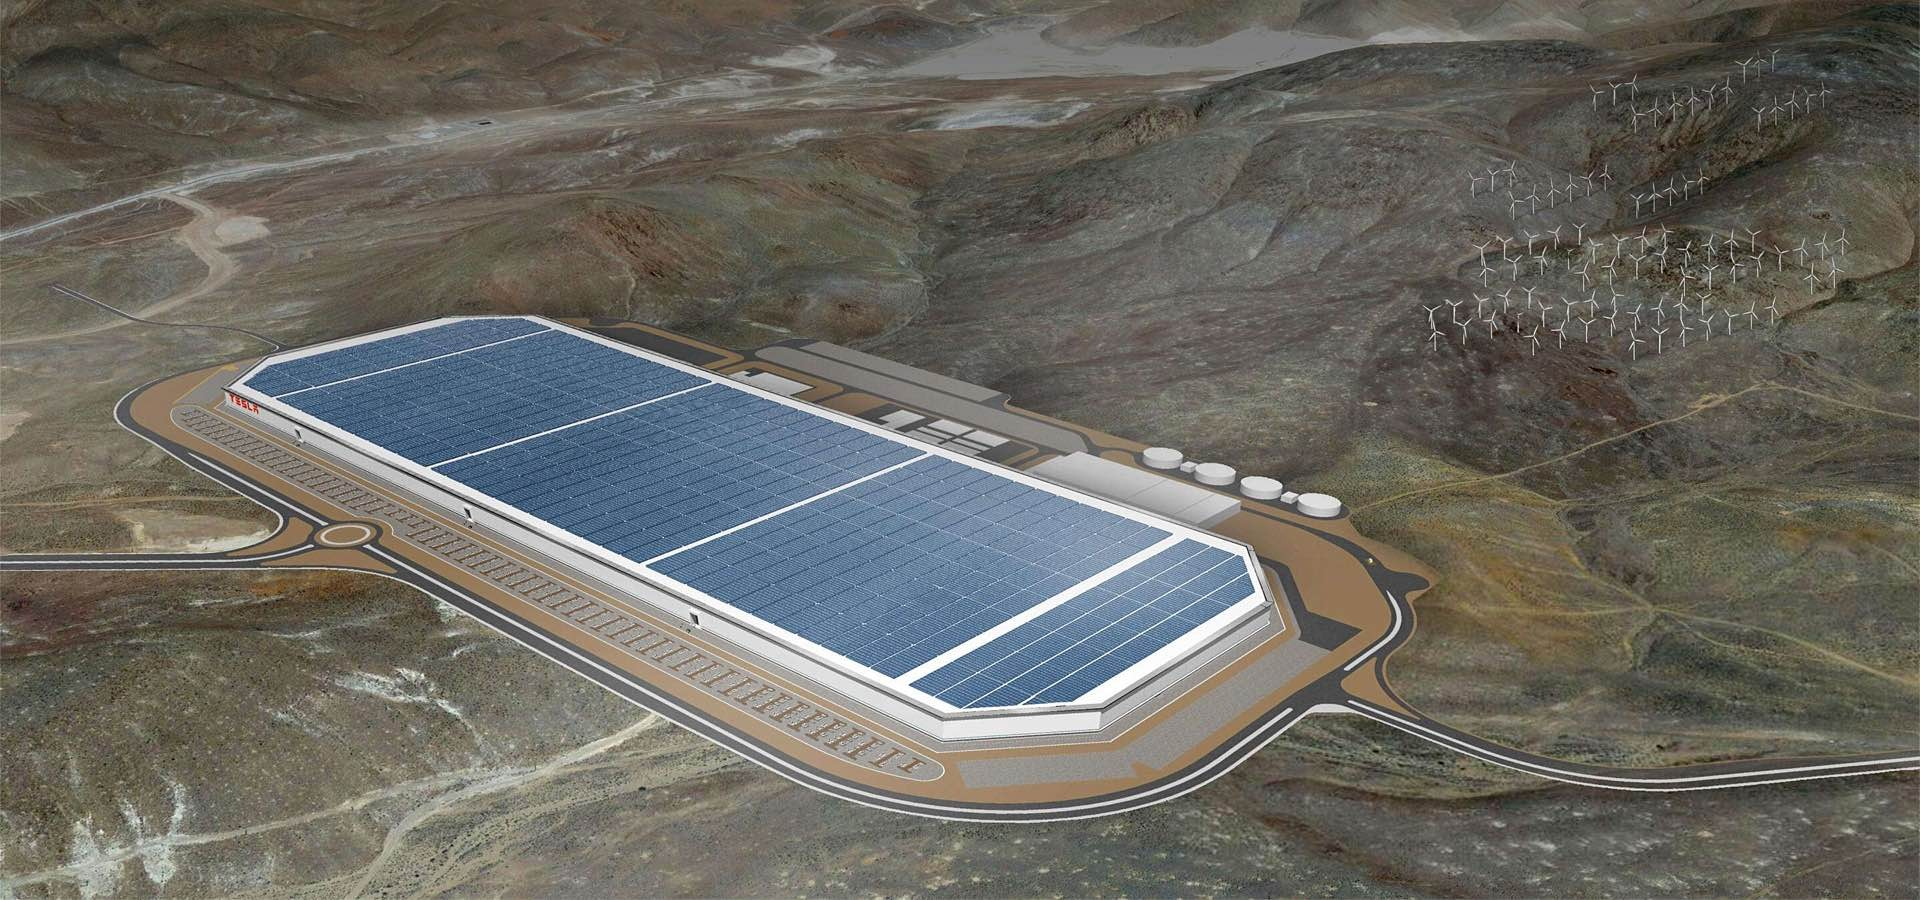 Tesla's soon-to-be-operational [Gigafactory.](https://www.tesla.com/gigafactory) More photos of its construction [were published](http://jalopnik.com/inside-the-tesla-gigafactory-the-biggest-factory-in-th-1784369456) at *Jalopnik* yesterday.